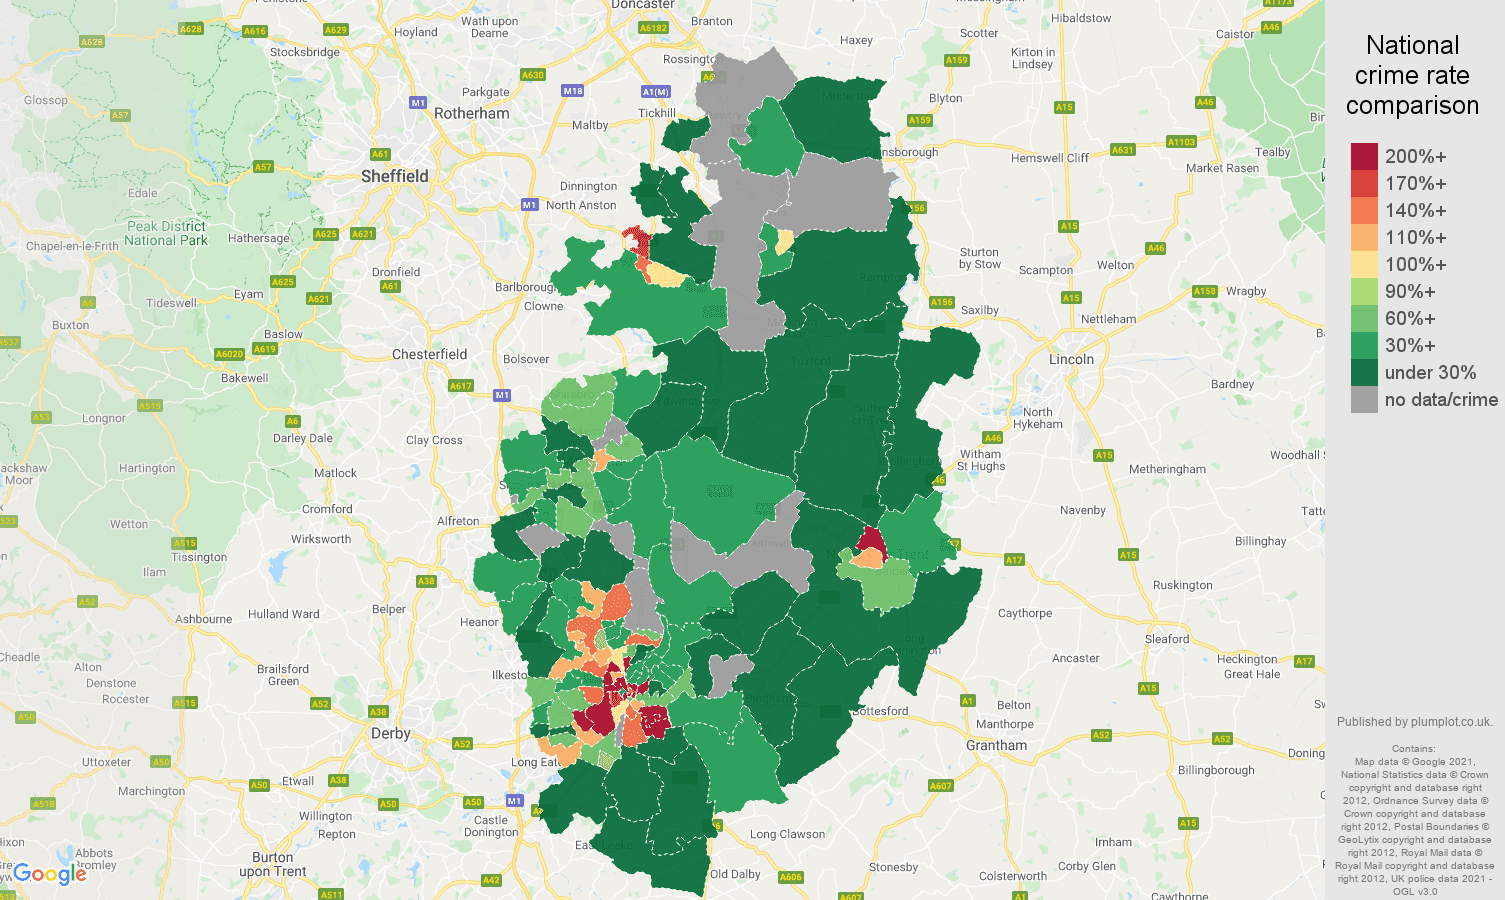 Nottinghamshire bicycle theft crime rate comparison map